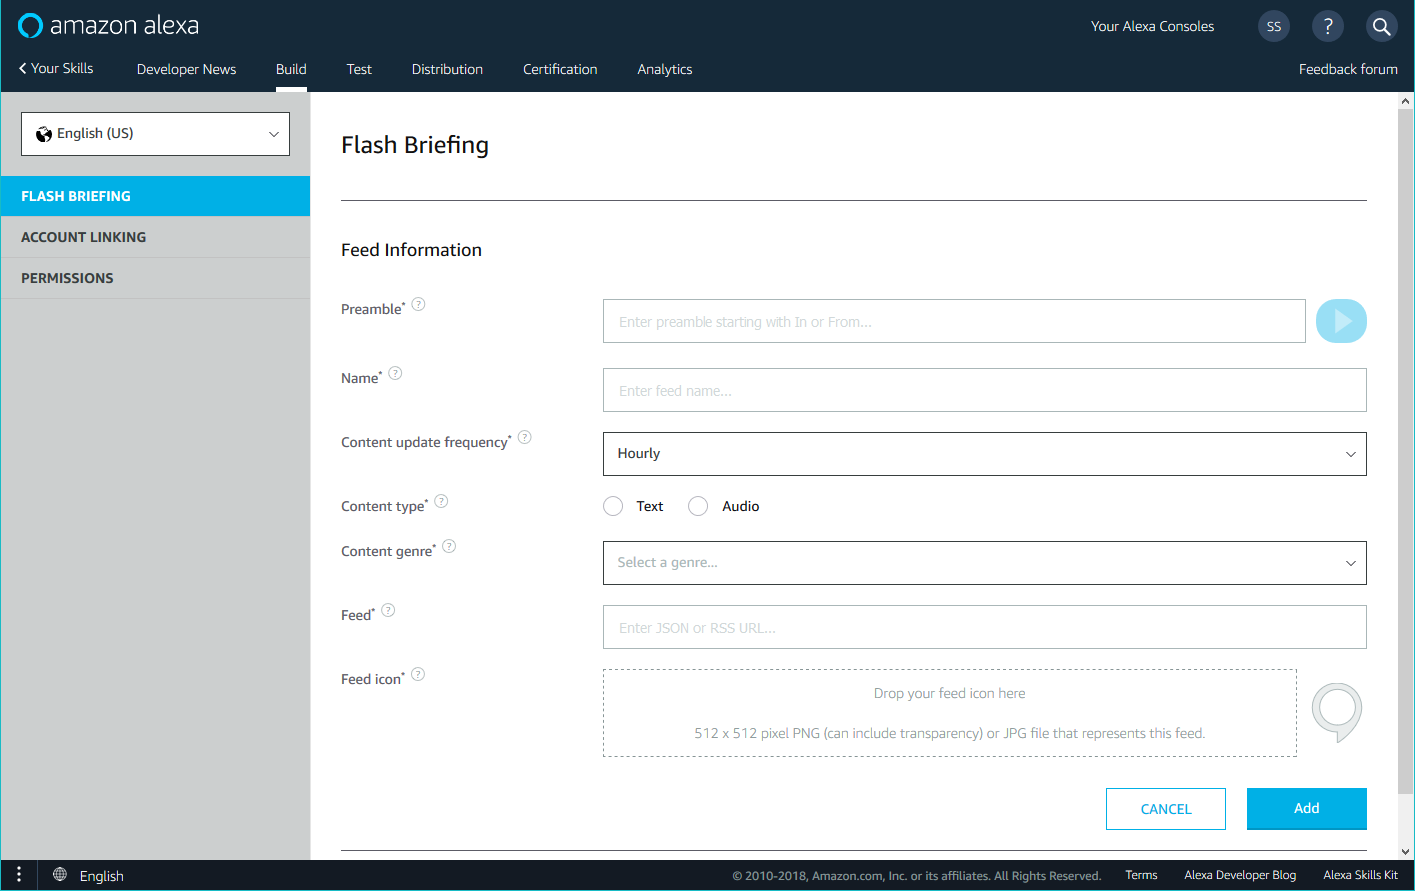 Build page for a flash briefing skill, showing the fields for a new feed